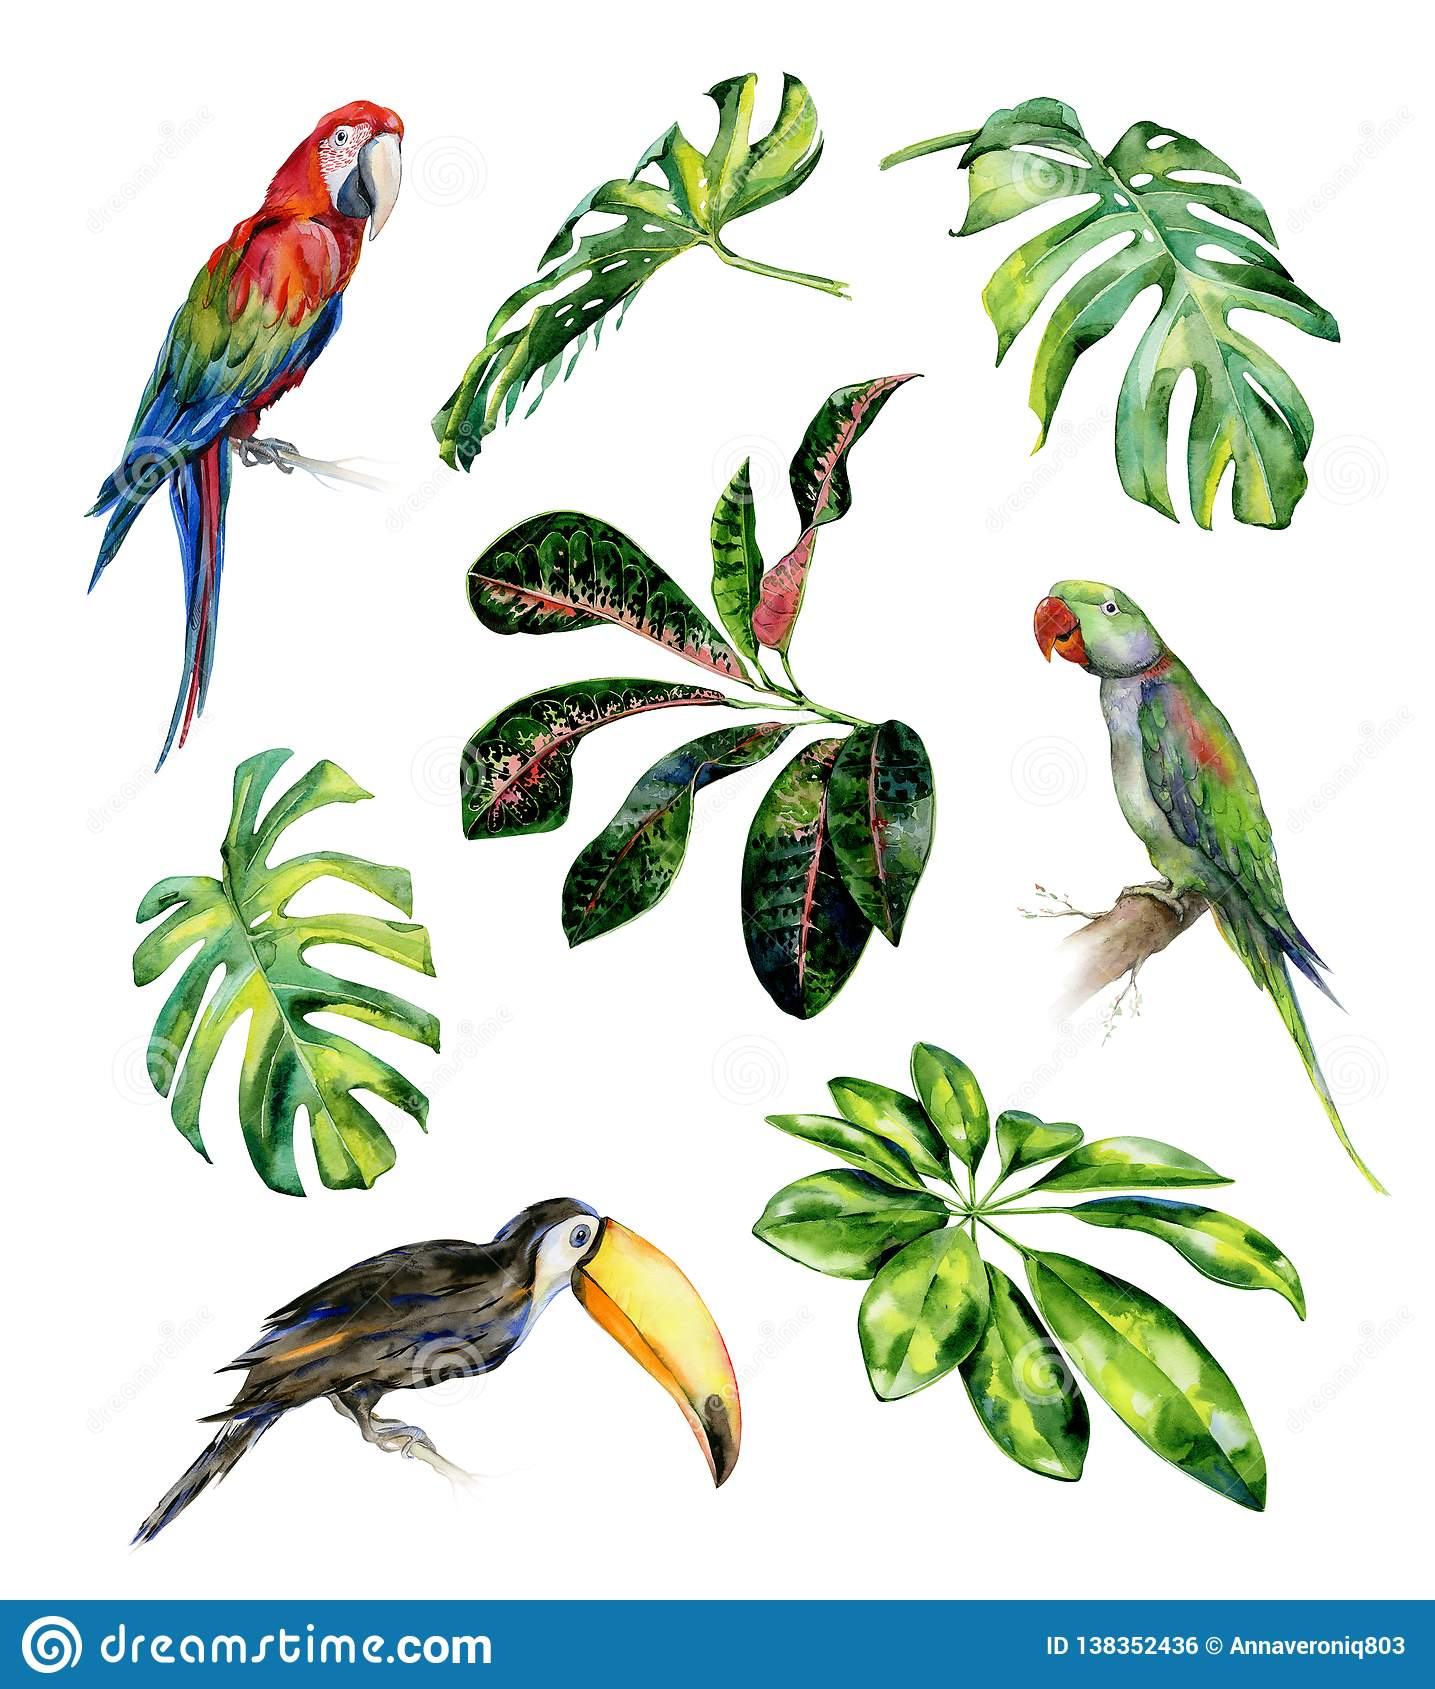 Watercolor illustration set of tropical leaves and birds.